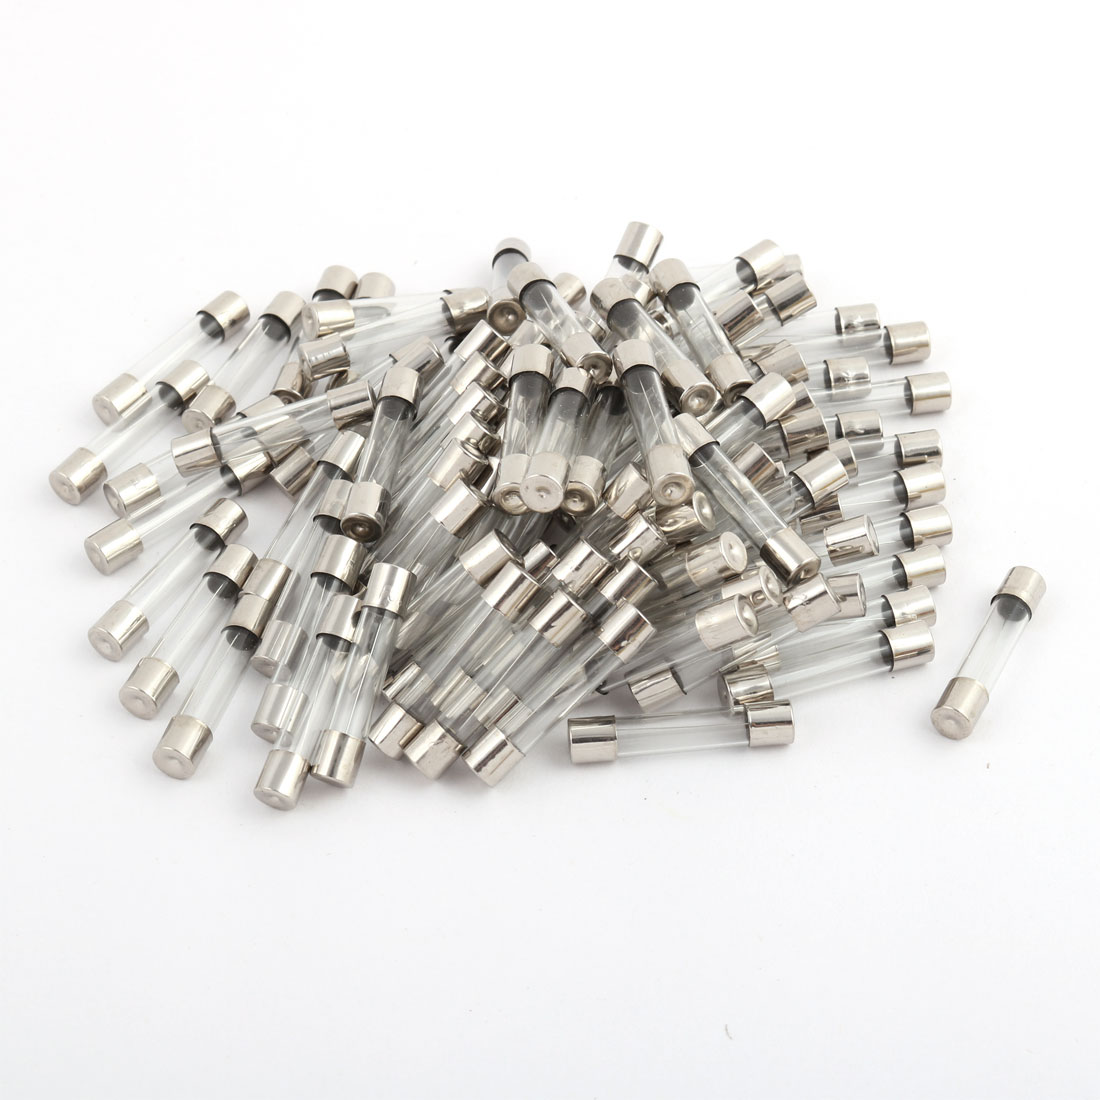 100 Pcs 250V 5A 6mm x 30mm Glass Tube Fuse Silver Tone for Electric Safety